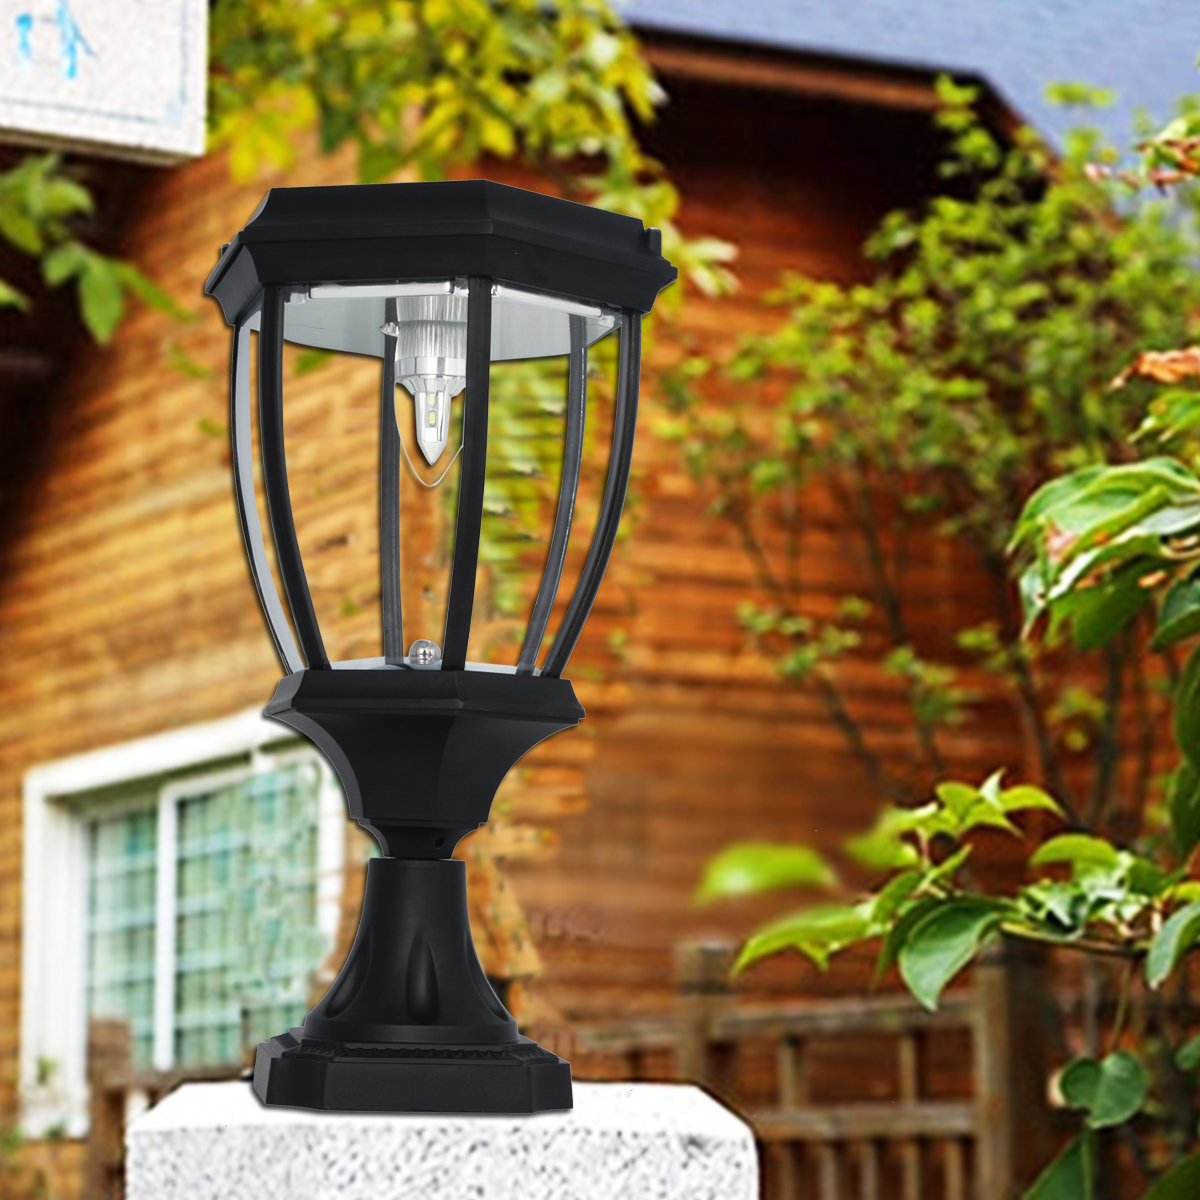 Large Outdoor Solar Powered LED Light Lamp SL-8405